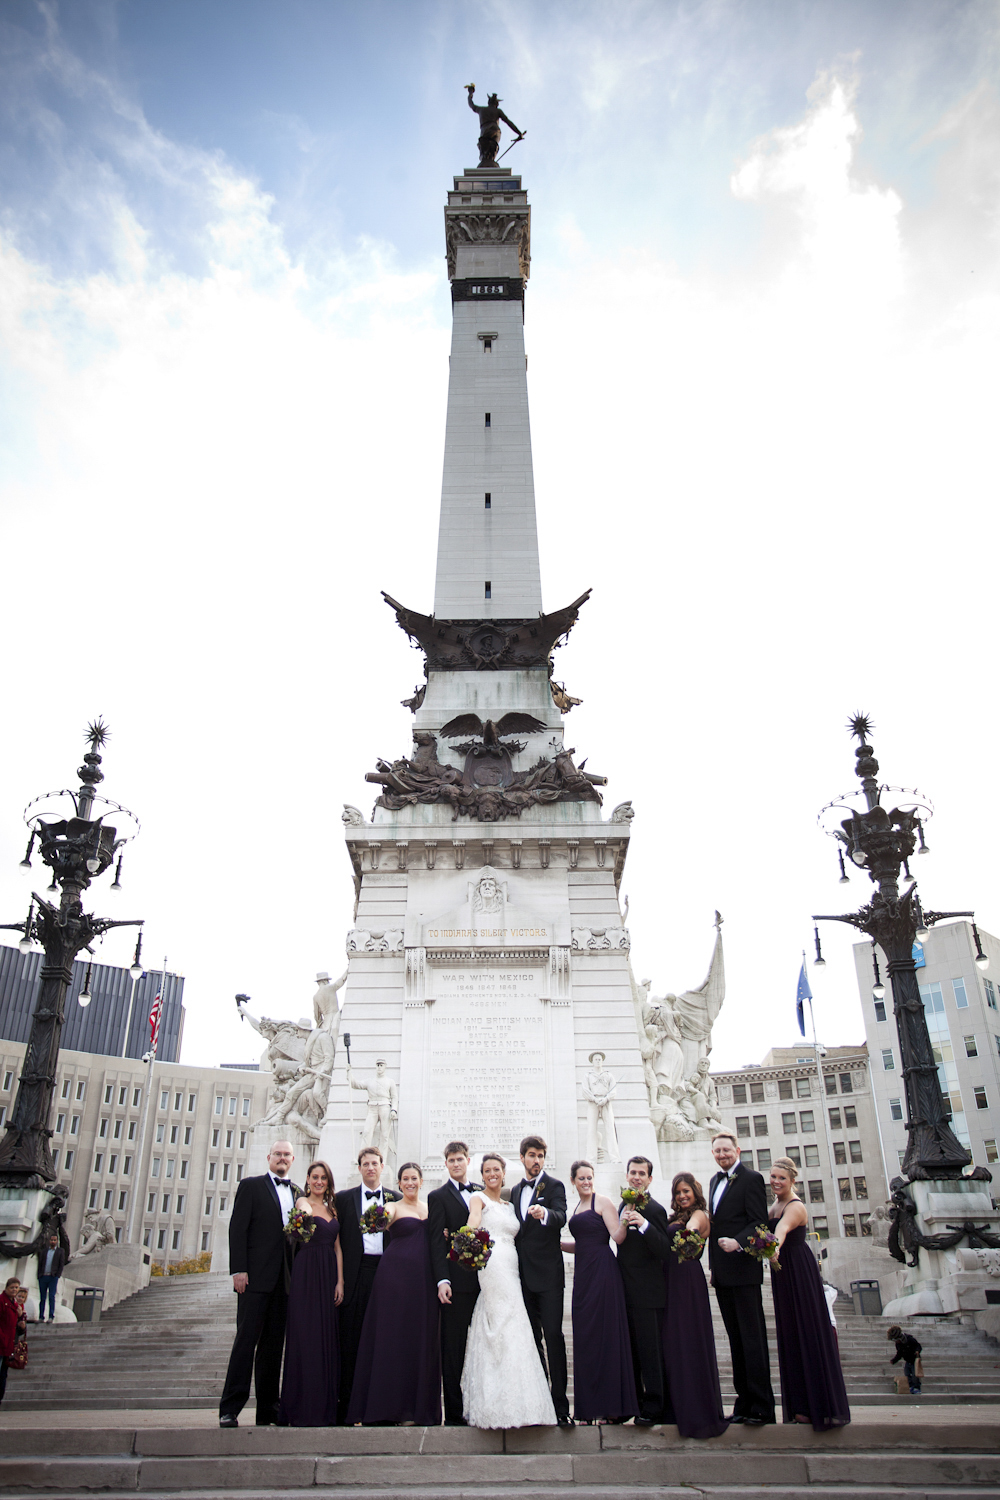 Indianapolis-Indiana-Monument-Circle-Wedding-Photographer-Crowes-Eye-Photography-Bride-Groom-Fun-formals-411.jpg